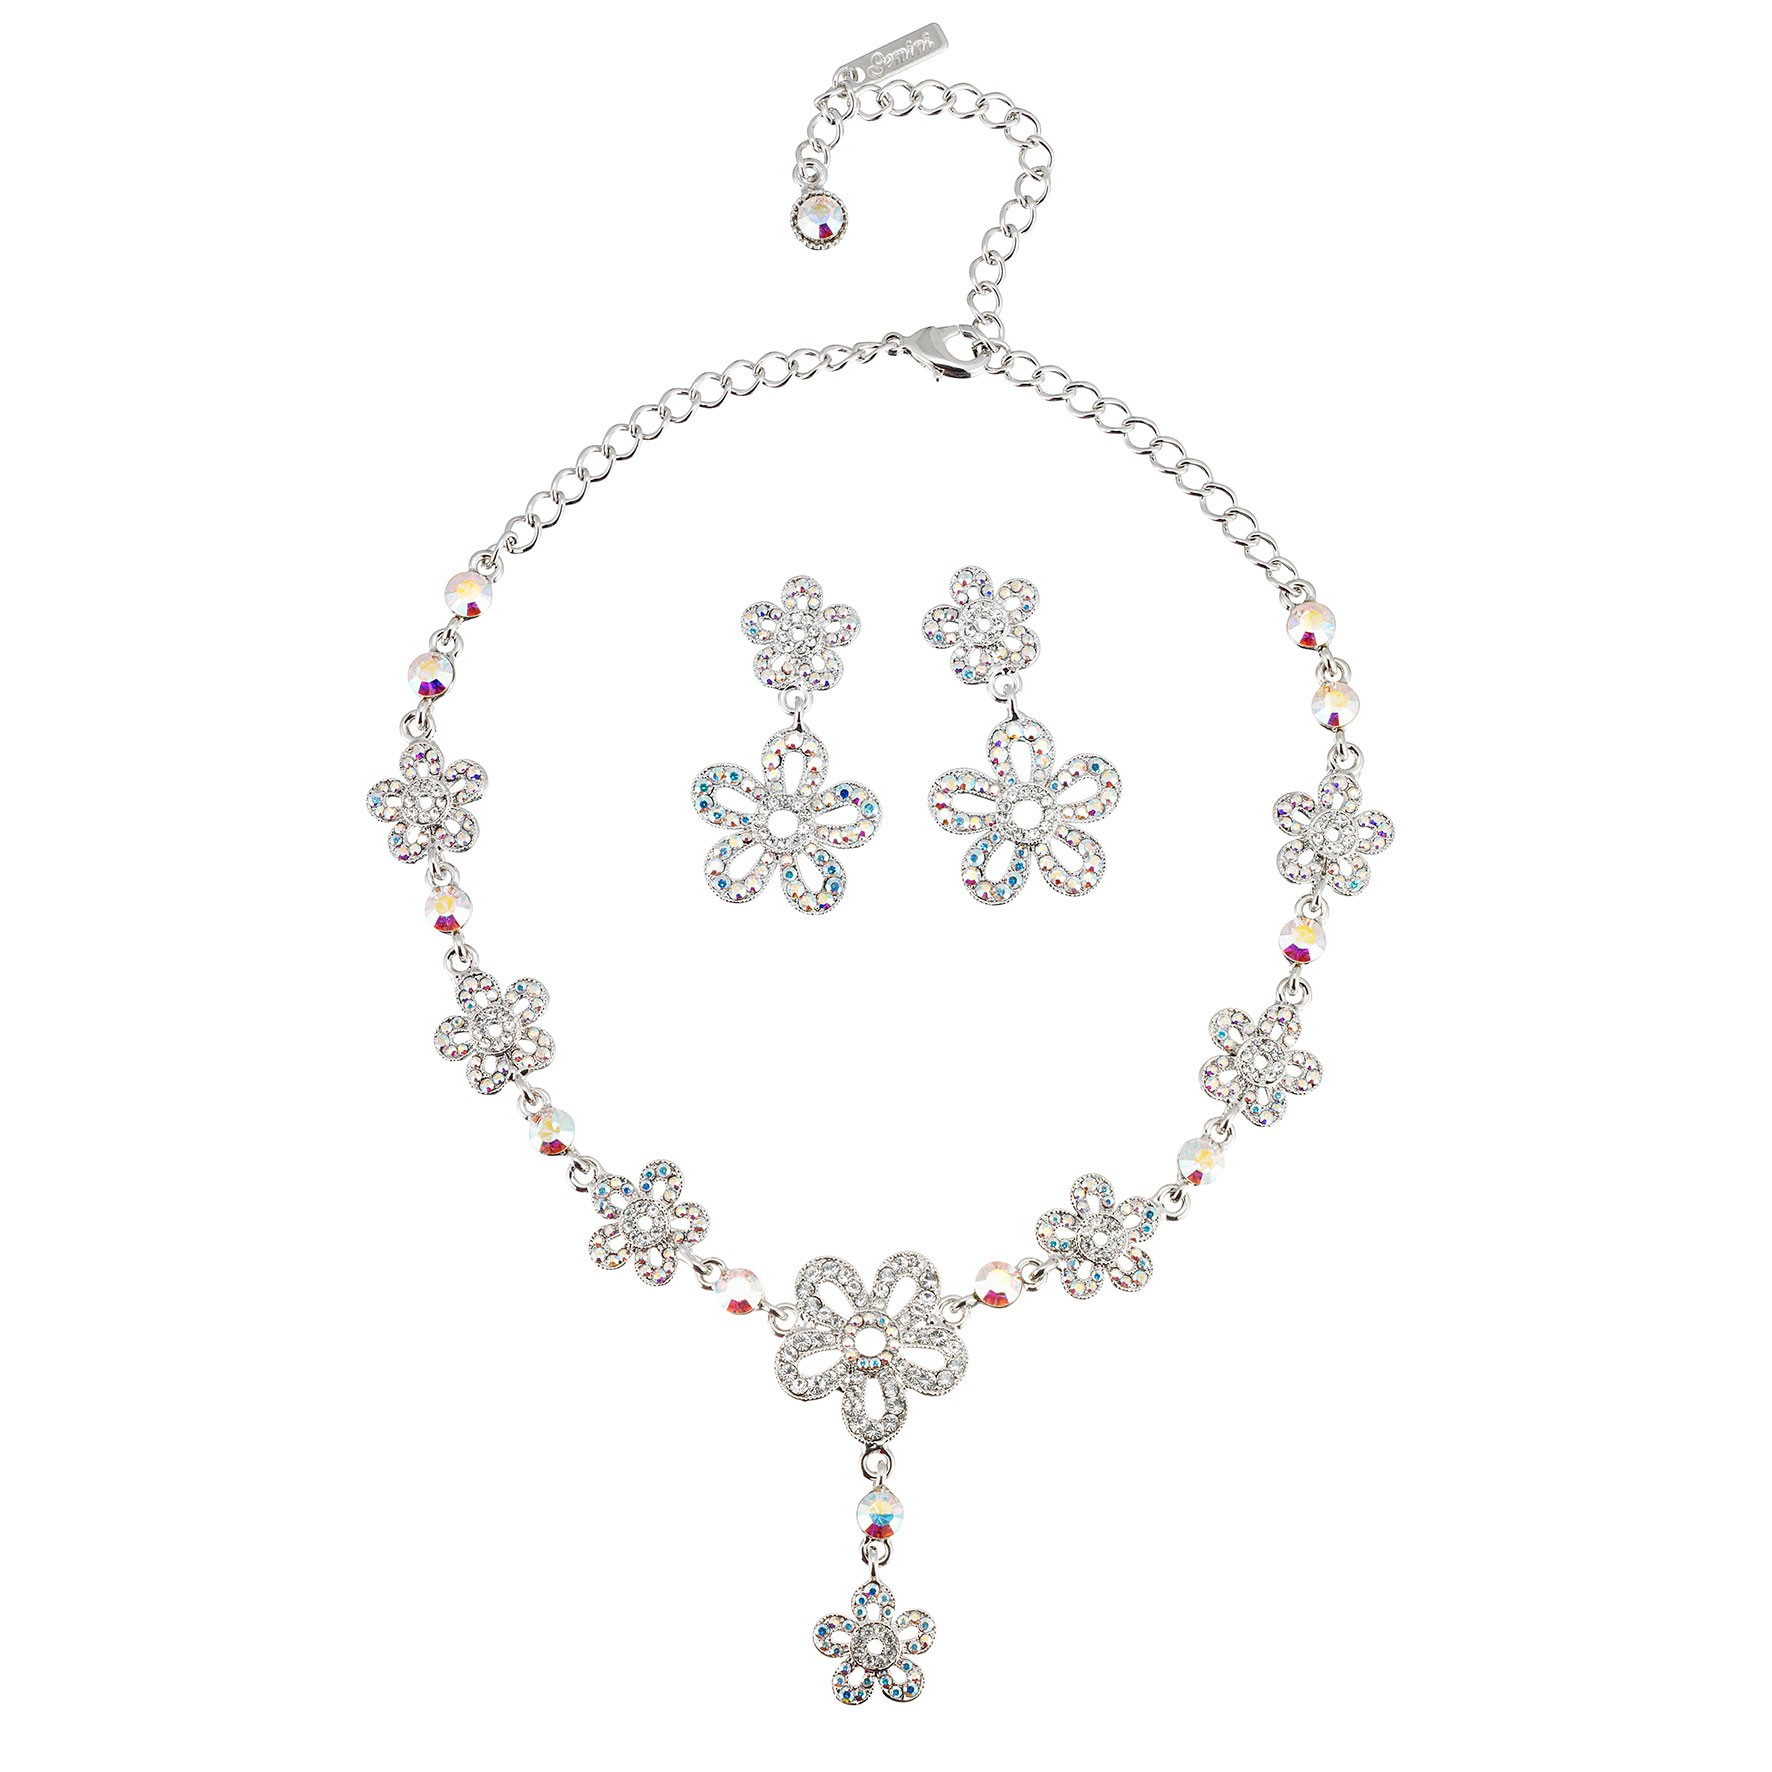 b0a882659 AB Crystal Jewellery Set - Necklace and Earrings of Summer Flowers, AB &  Clear Swarovski